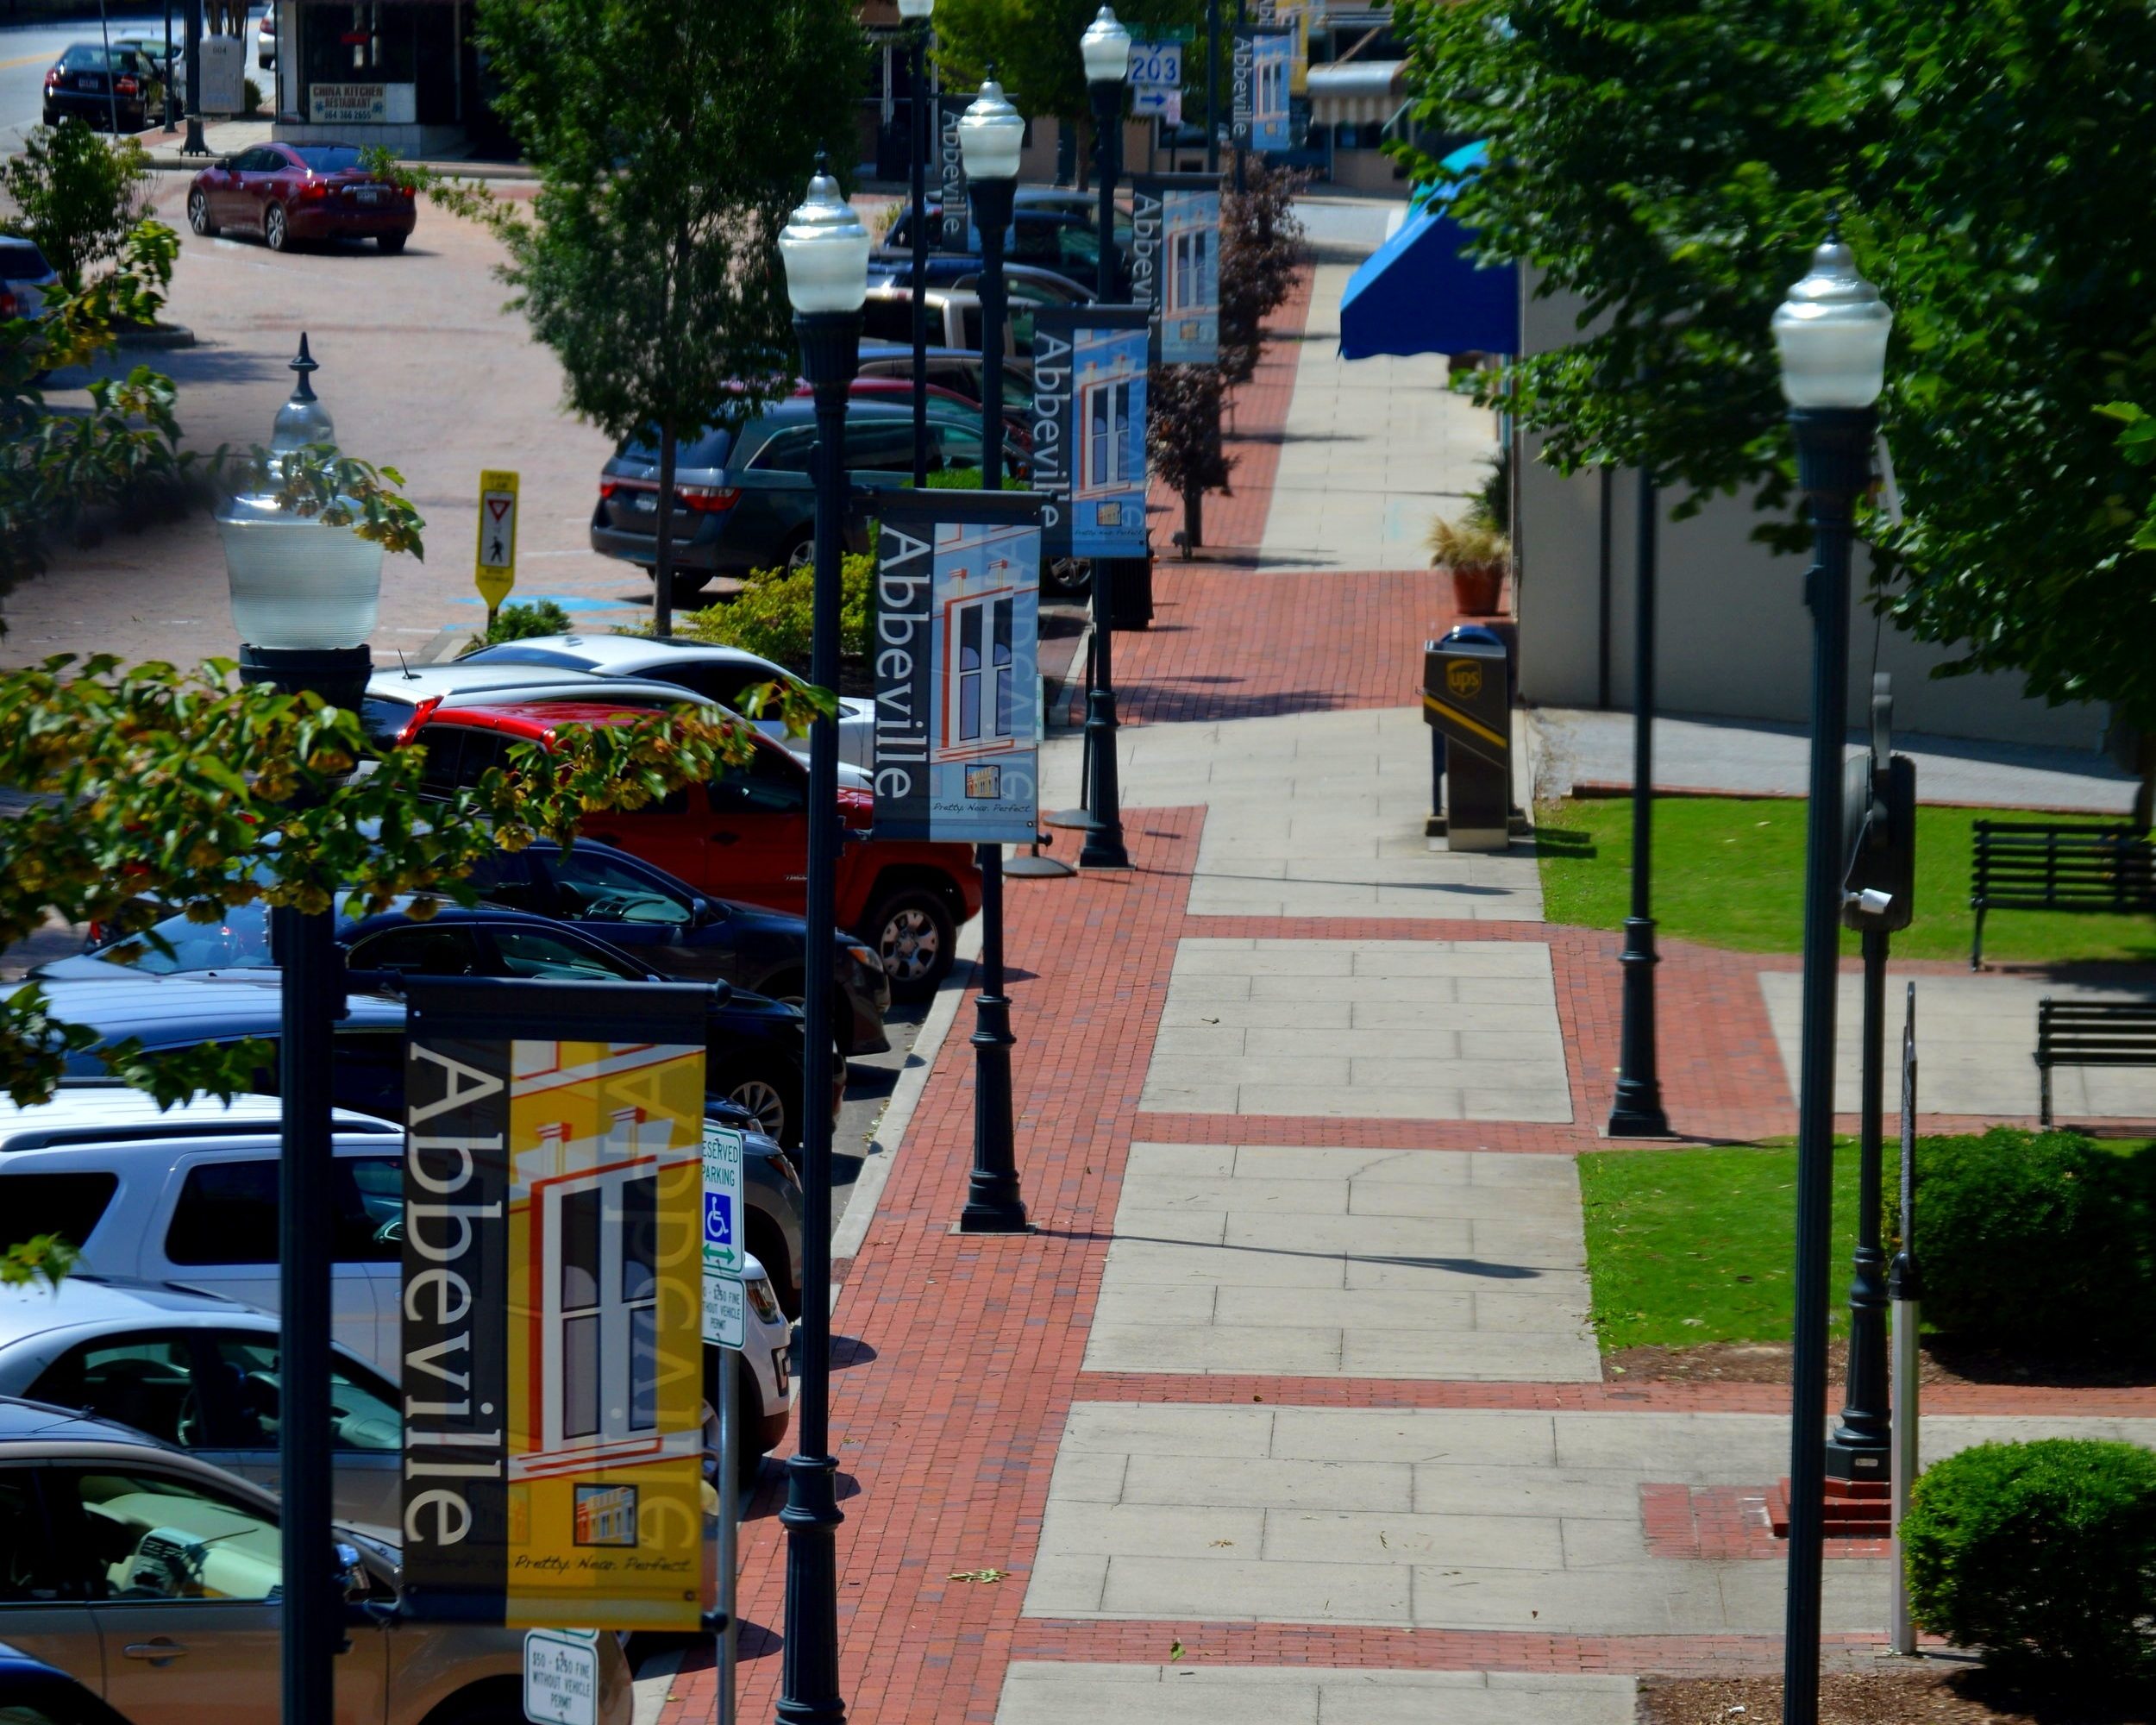 The view from the second floor of Urban 2 Country provides you with one of the best views of the Abbeville square.